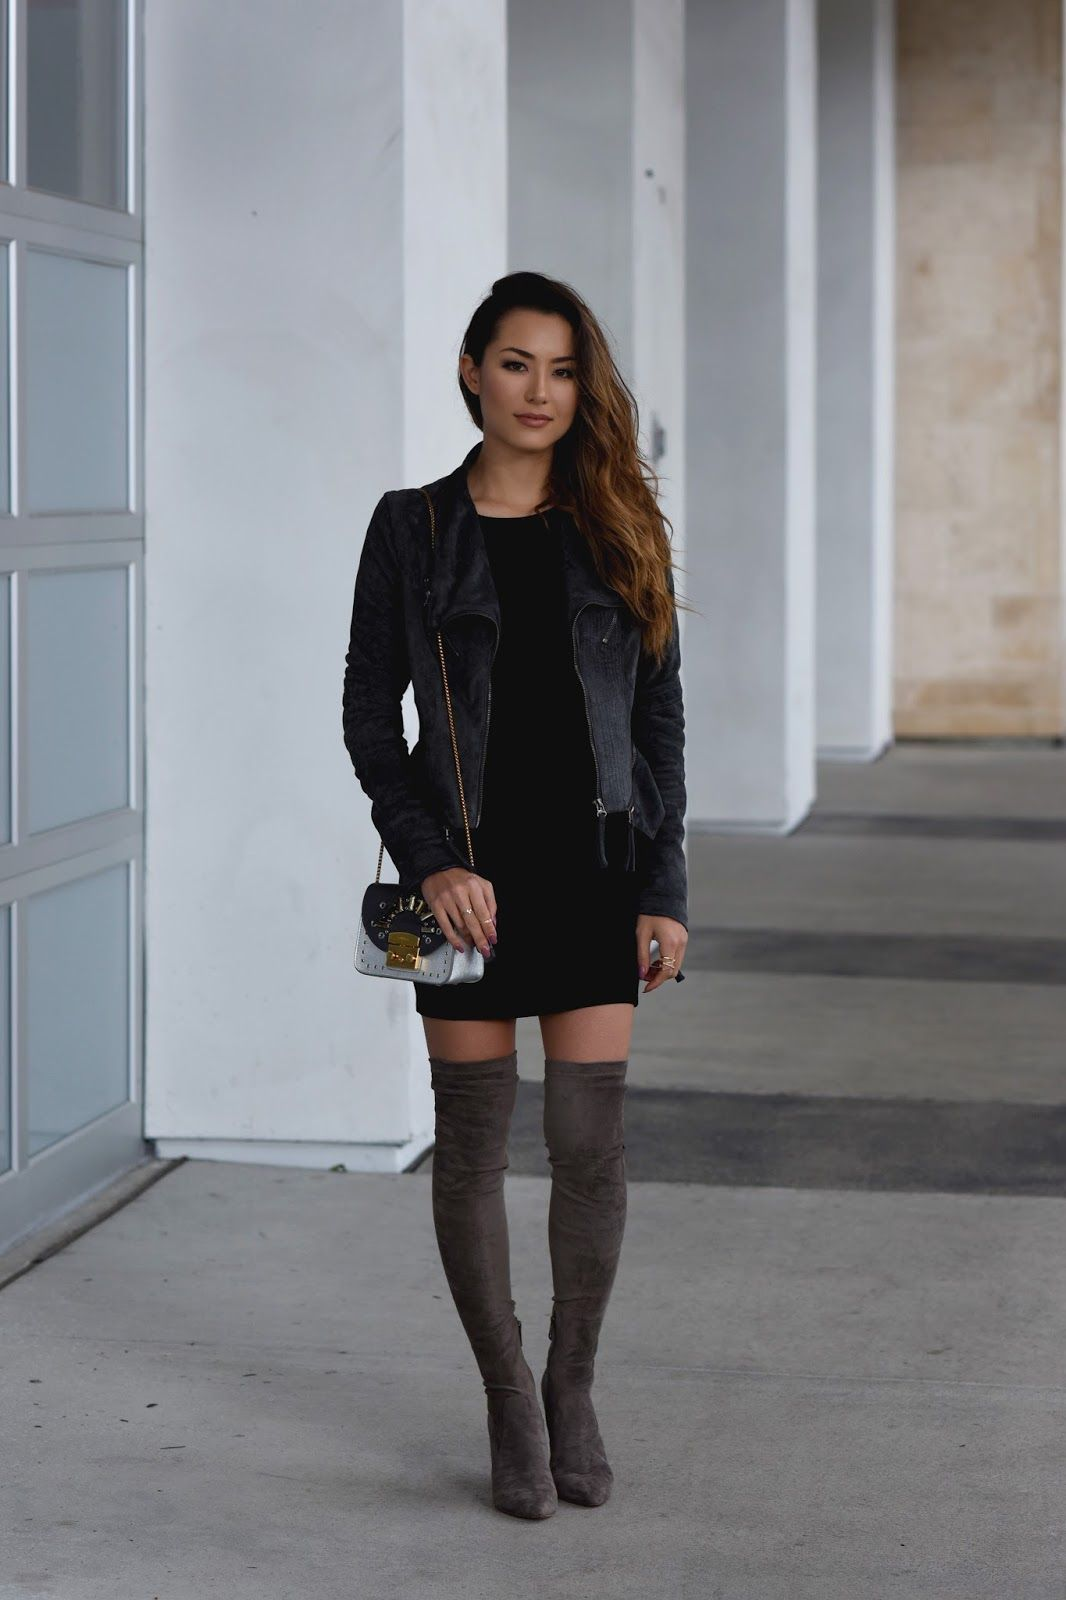 Faux Suede (Hapa Time) | Ootd, Street and People